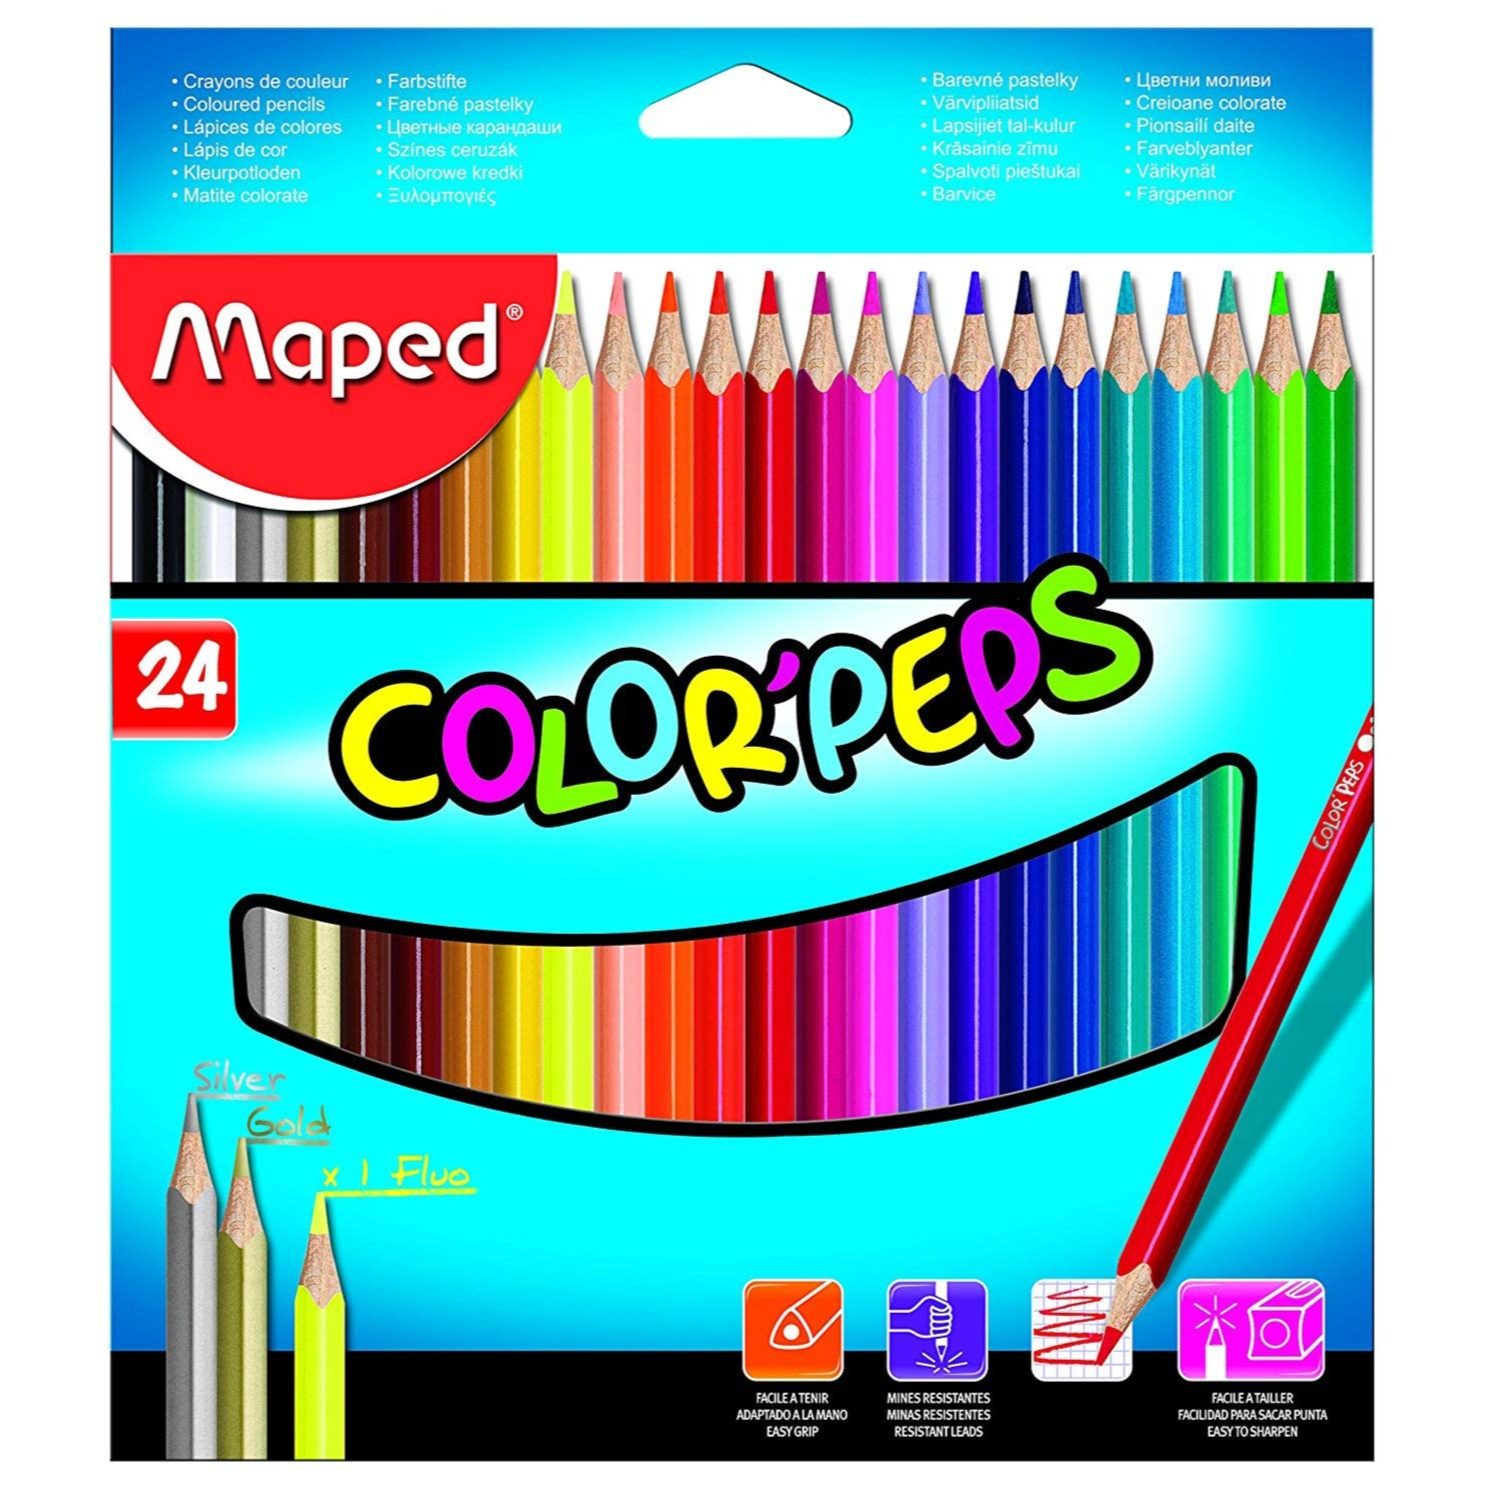 Maped Color Pencil Box - Pack of 24 Silver, Gold, Fluo (Multicolor)